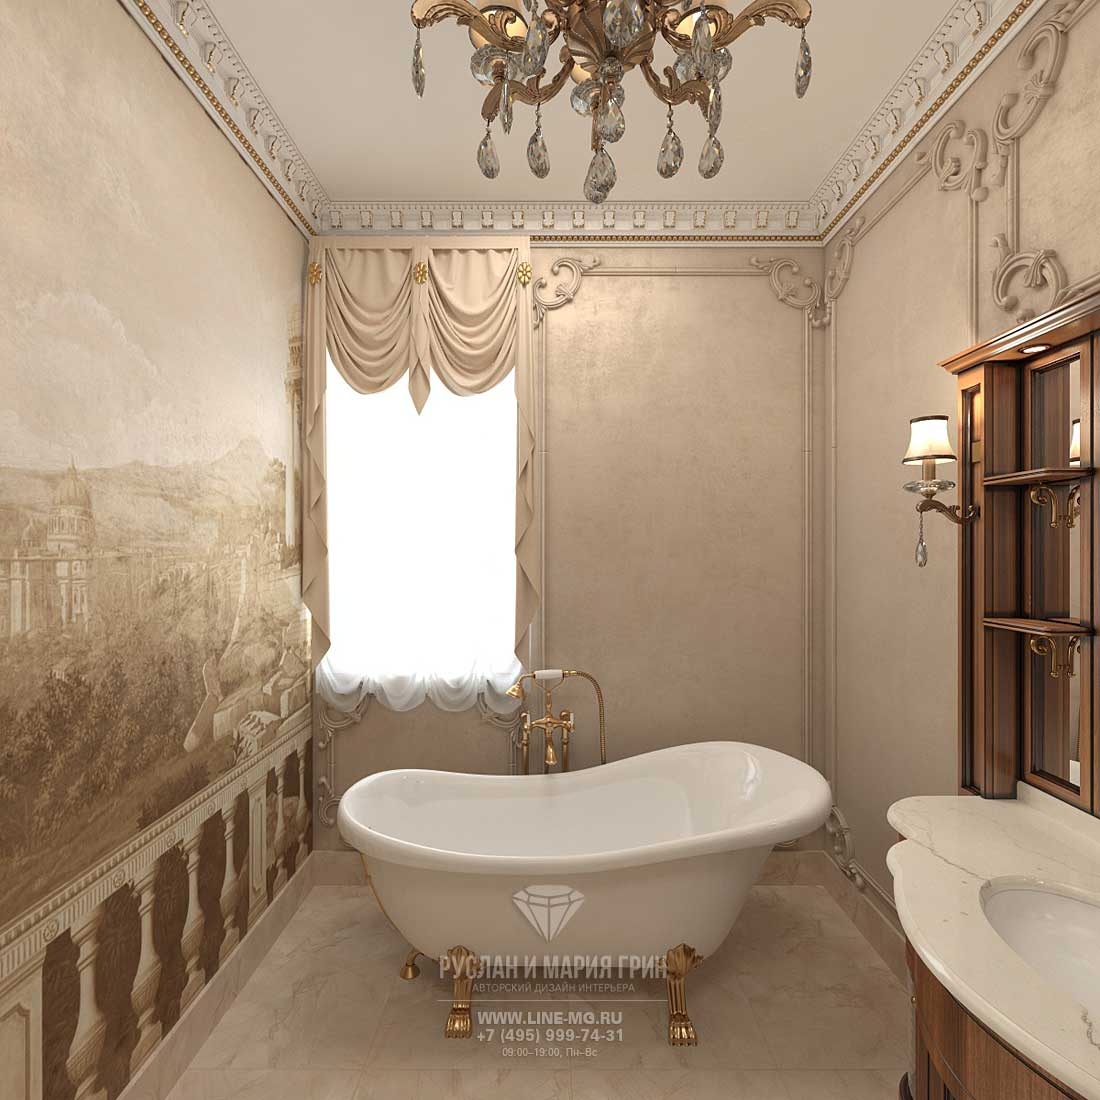 17 2015 for Bathroom design 2015